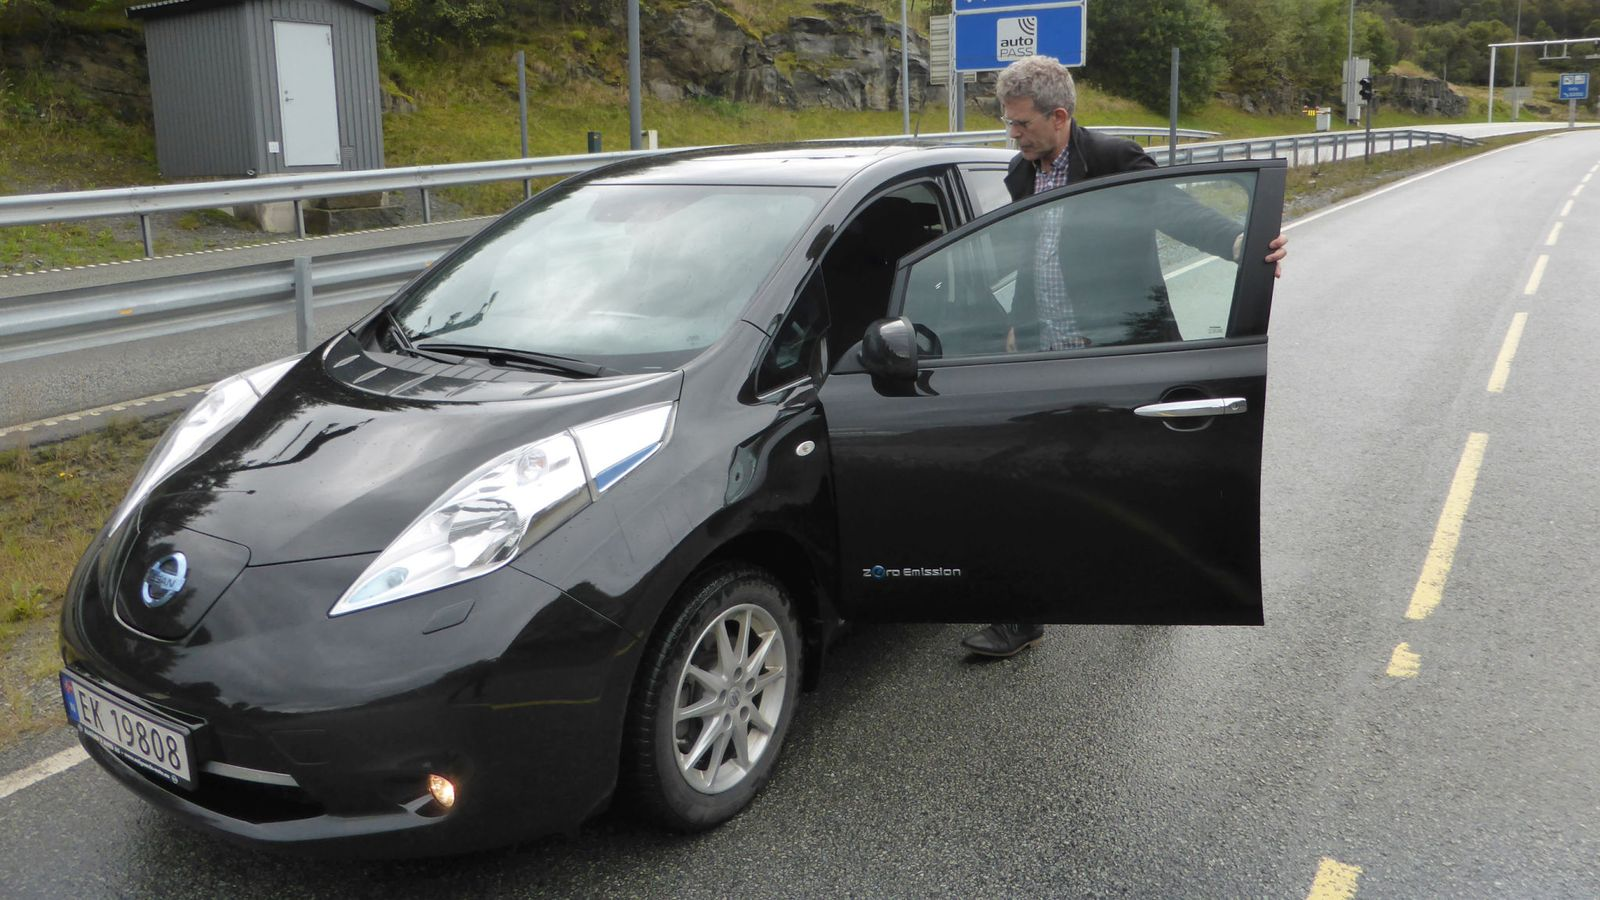 Almost a third of new cars sold in Norway in 2018 were electric